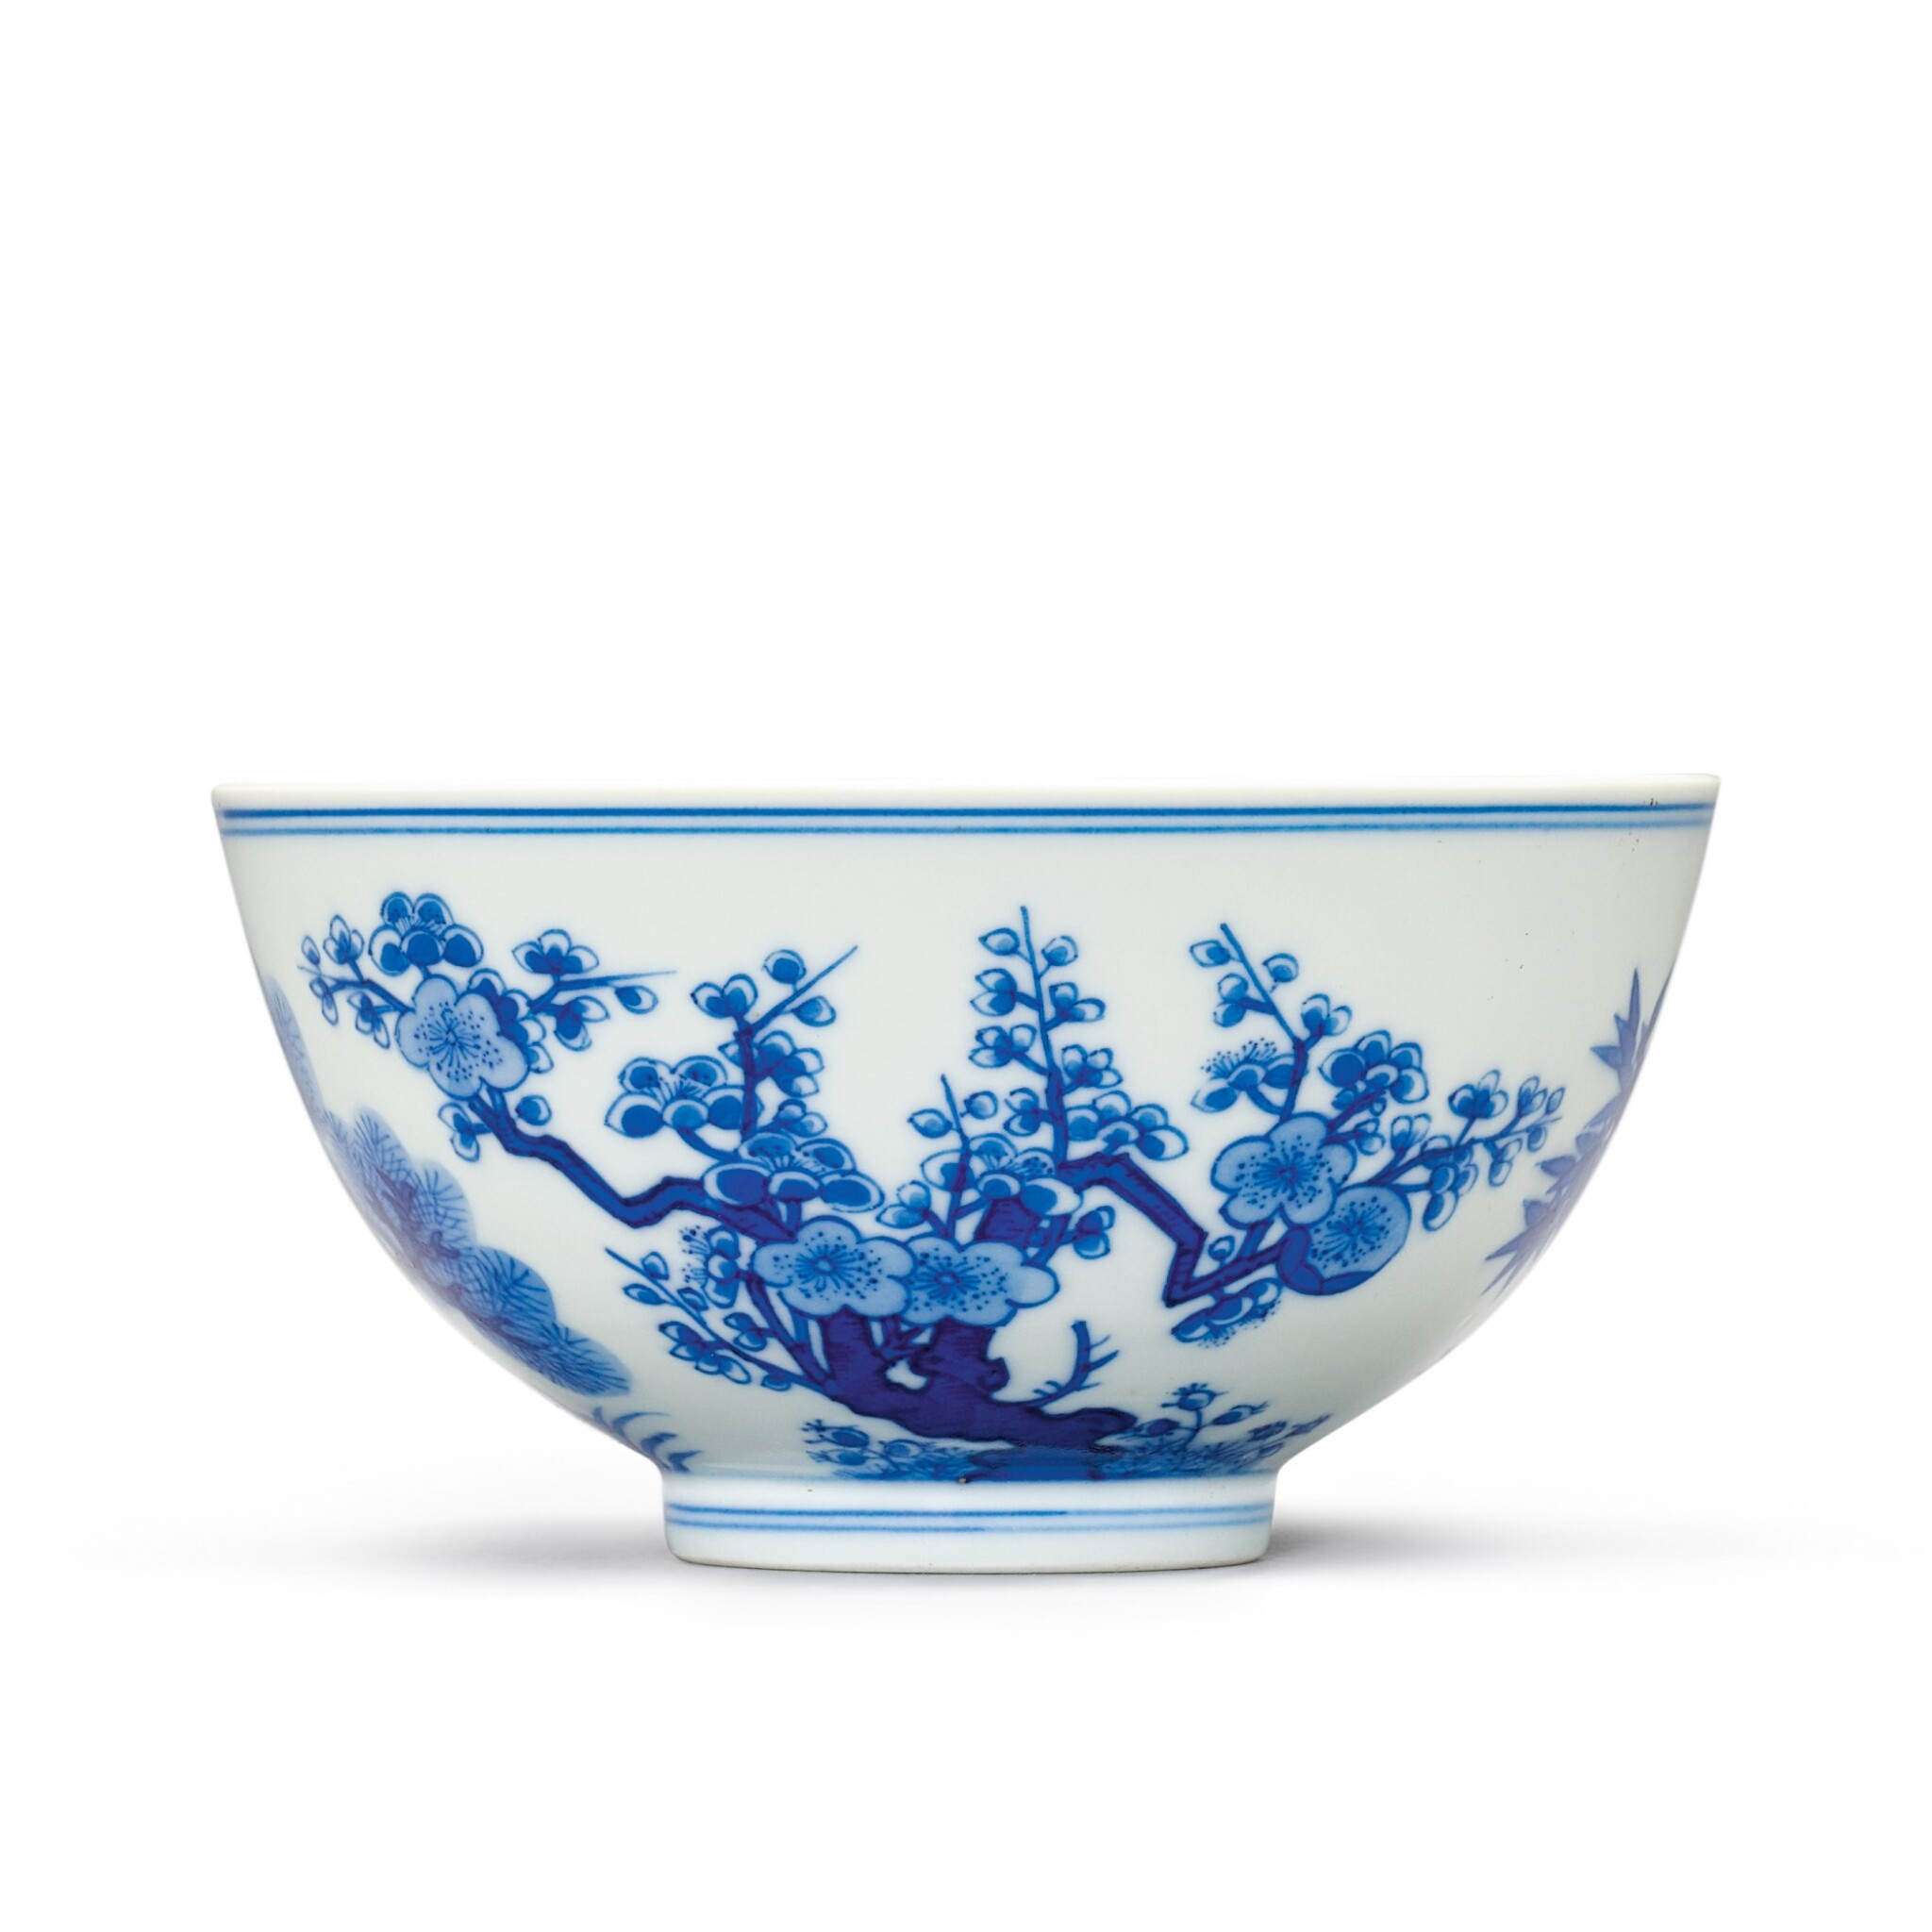 A FINE BLUE AND WHITE 'THREE FRIENDS' BOWL SEAL MARK AND PERIOD OF DAOGUANG | 清道光 青花歲寒三友盌 《大清道光年製》款